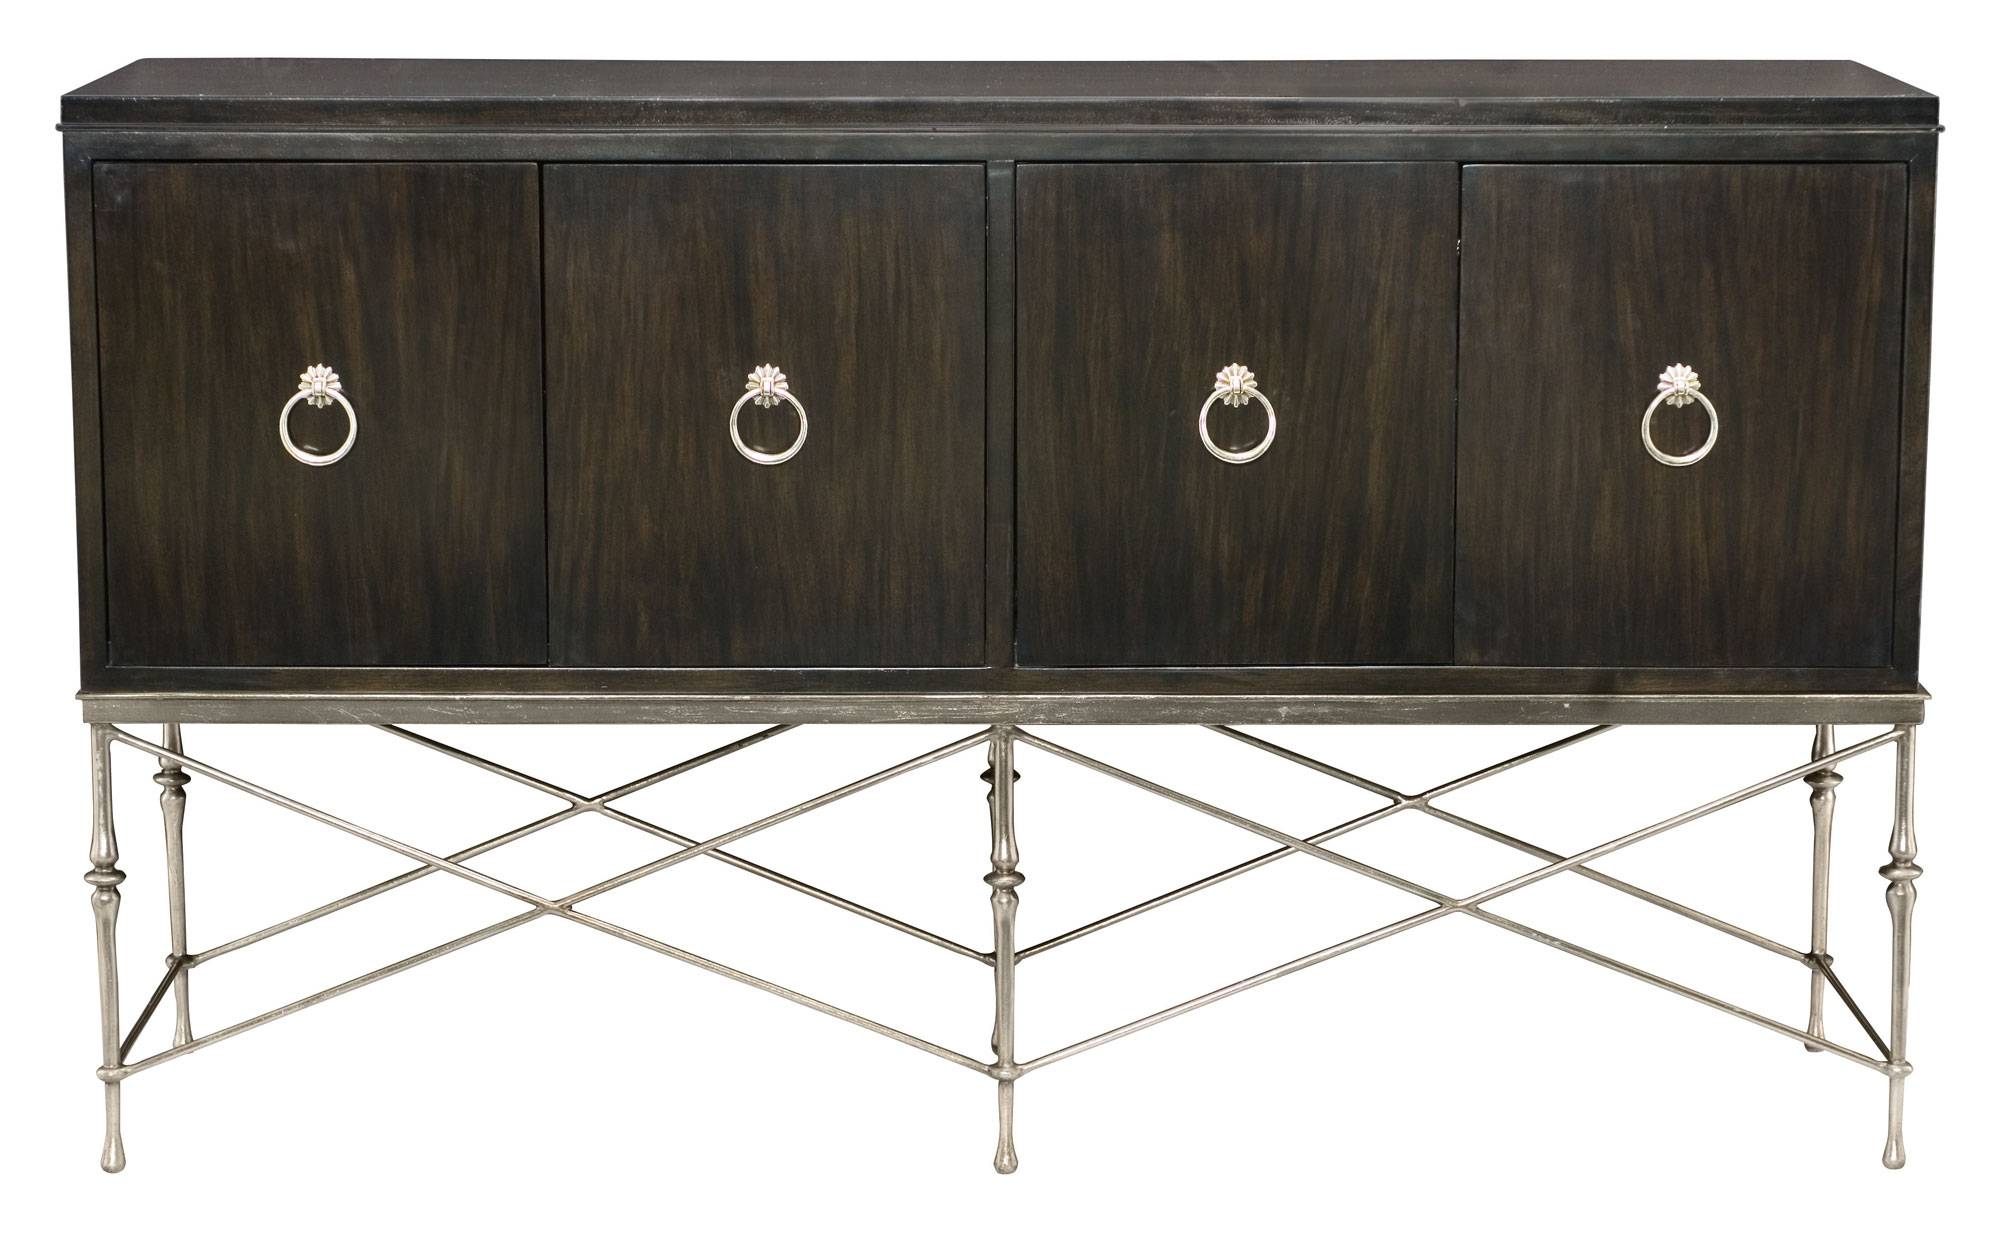 Buffet And Metal Base | Bernhardt intended for Metal Sideboard Furniture (Image 2 of 30)